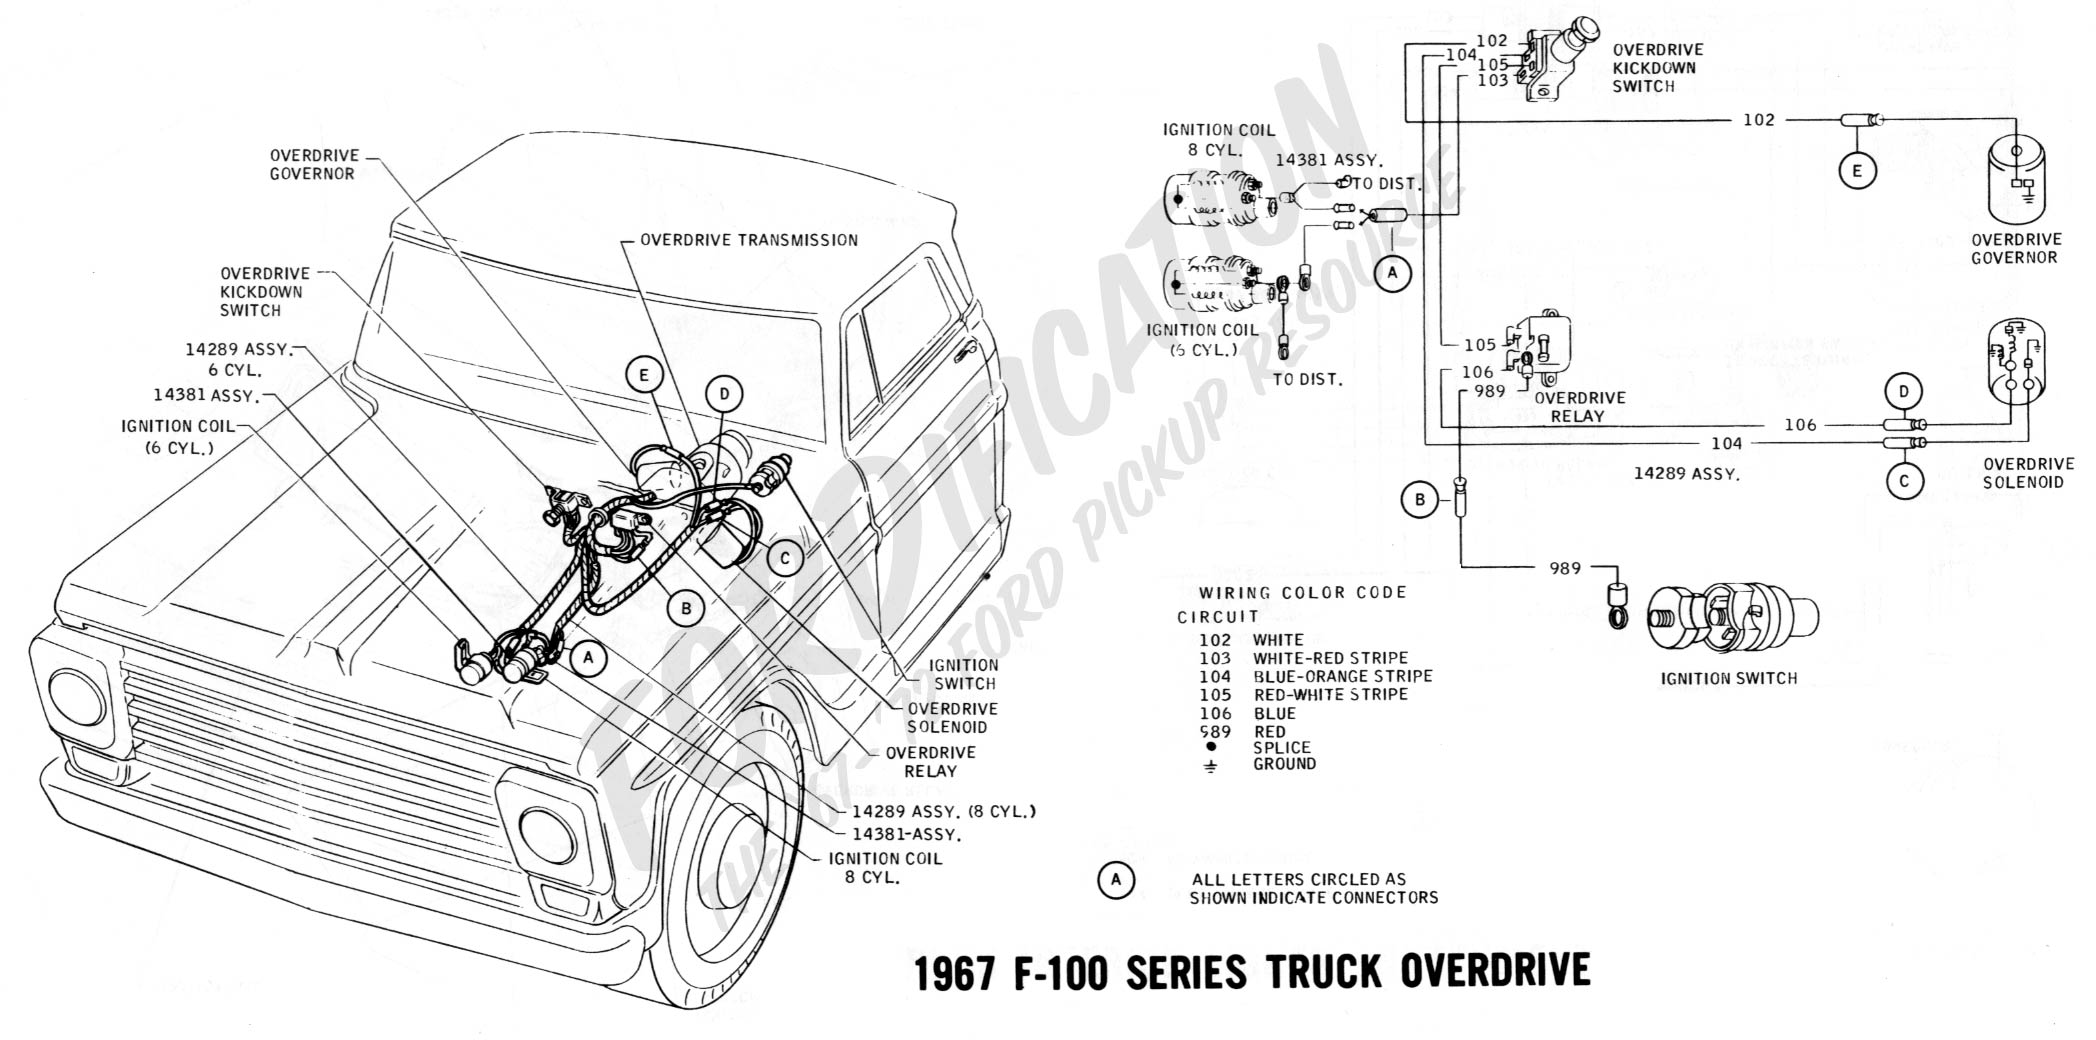 wiring 1967overdrive2 ford truck technical drawings and schematics section h wiring 1969 ford f100 wiring diagram at gsmportal.co